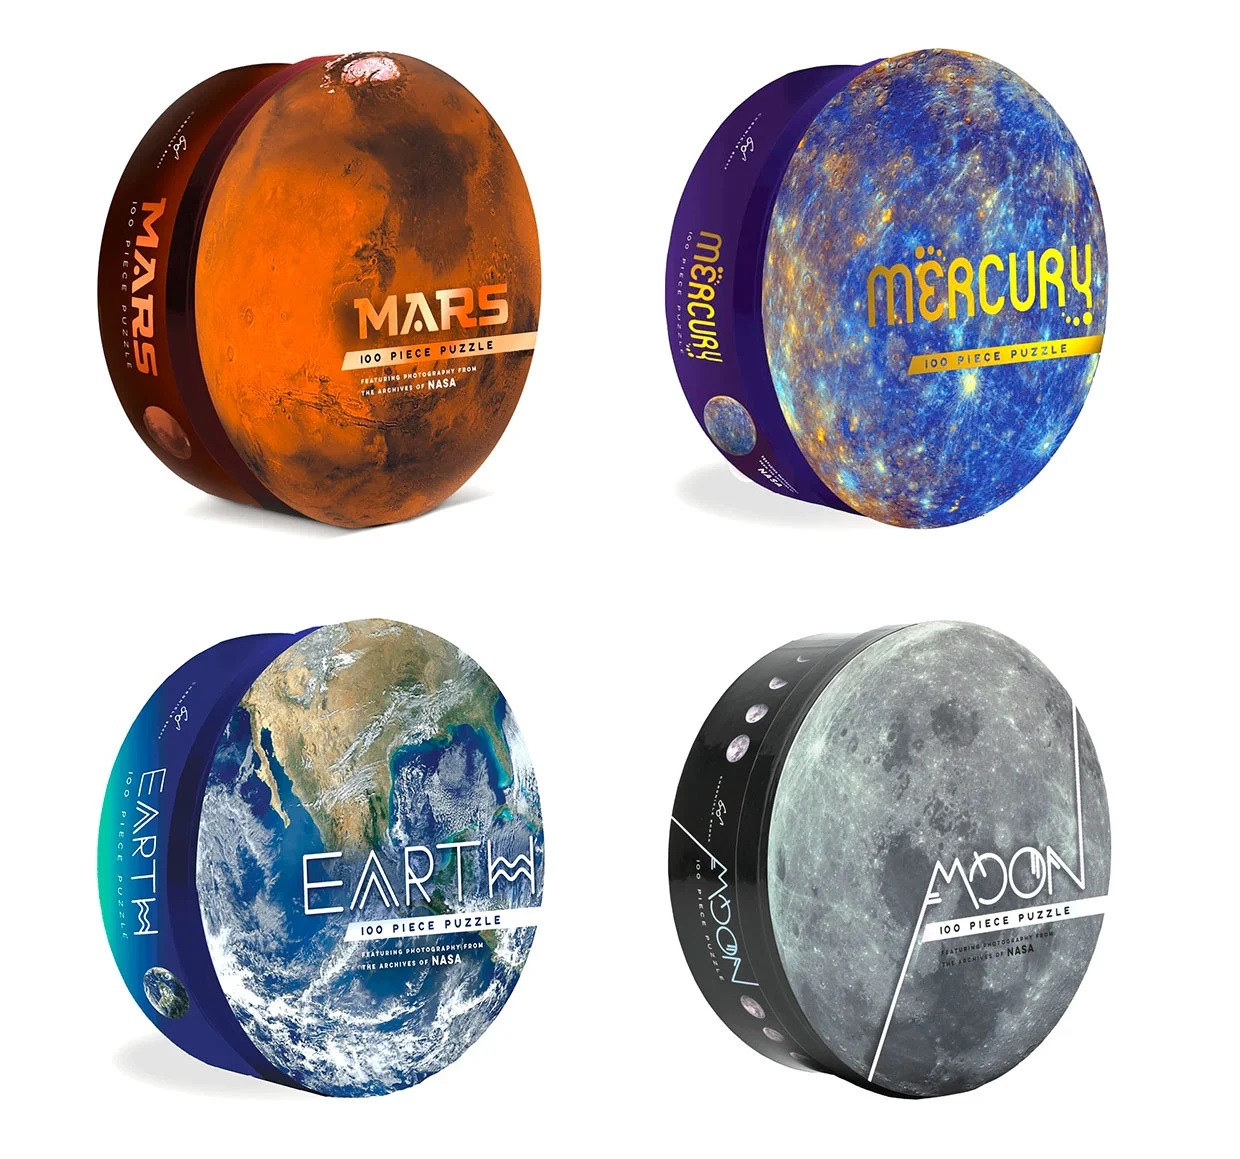 Four circular puzzle boxes, from top left to bottom right: Mars, Mercury, Earth, and Moon, each featuring a different foil treatment on the title.